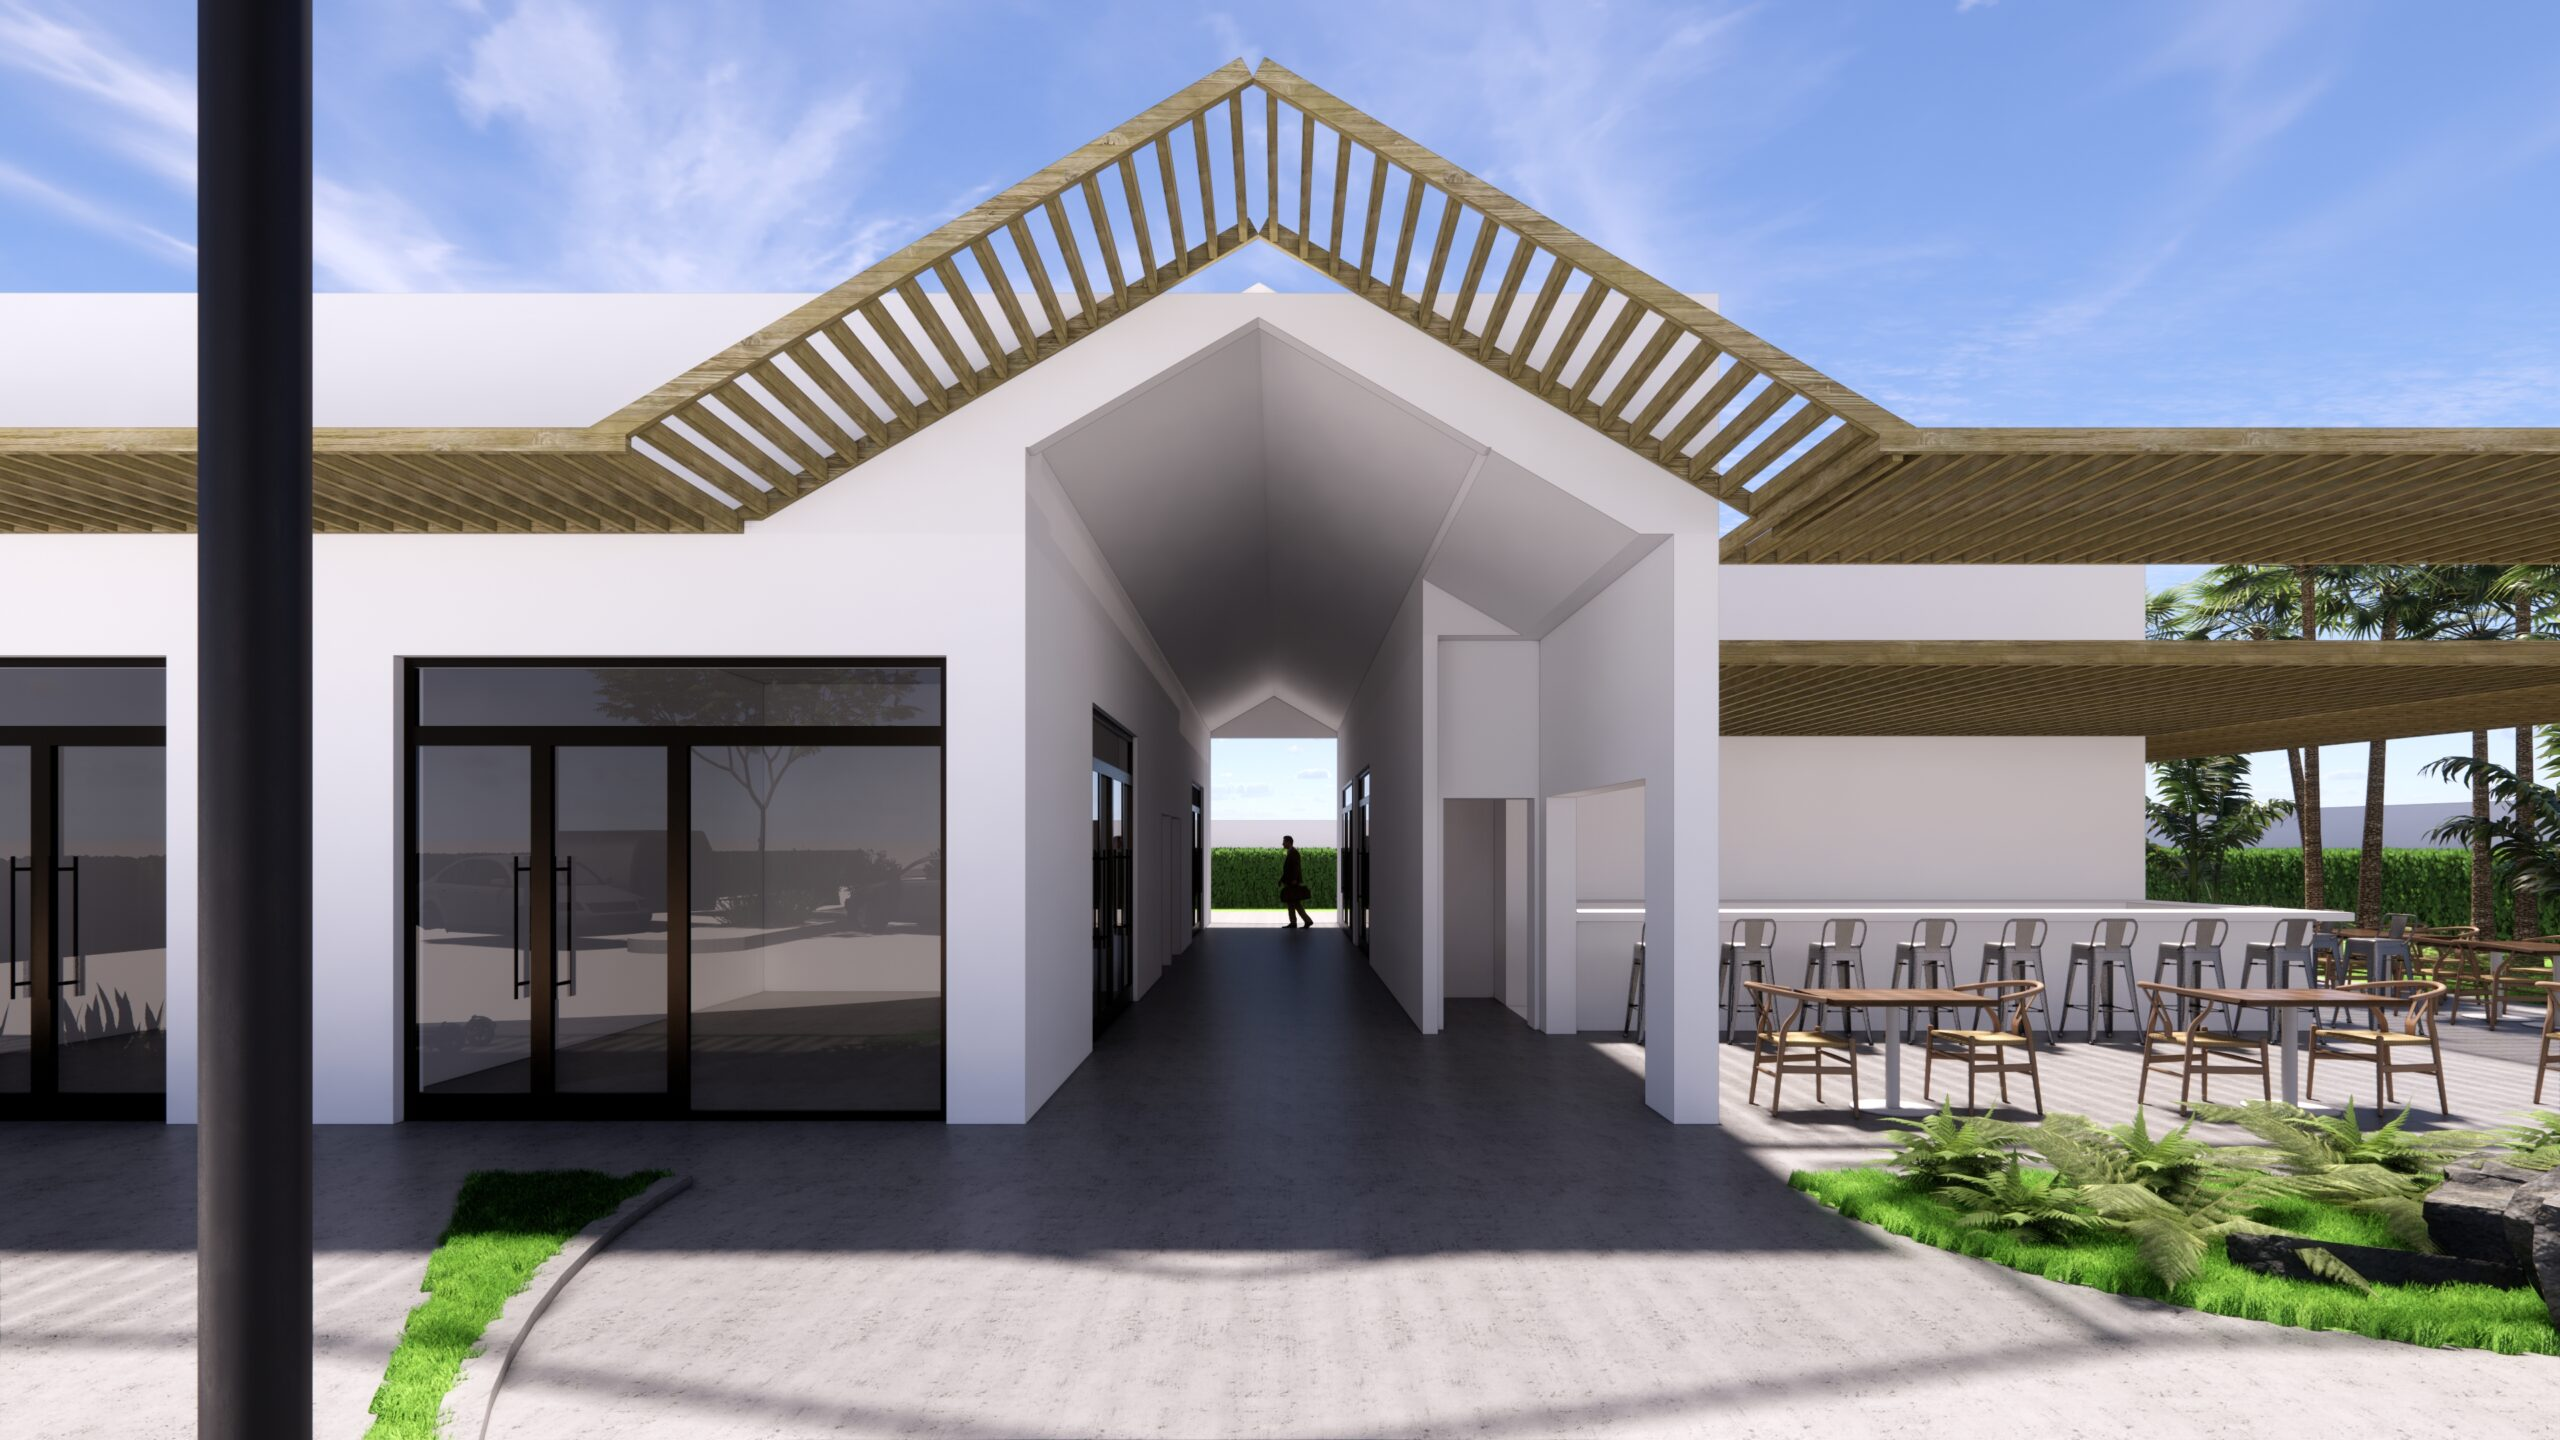 South Florida Church building readapted as commercial project (Fort Lauderdale, FL)